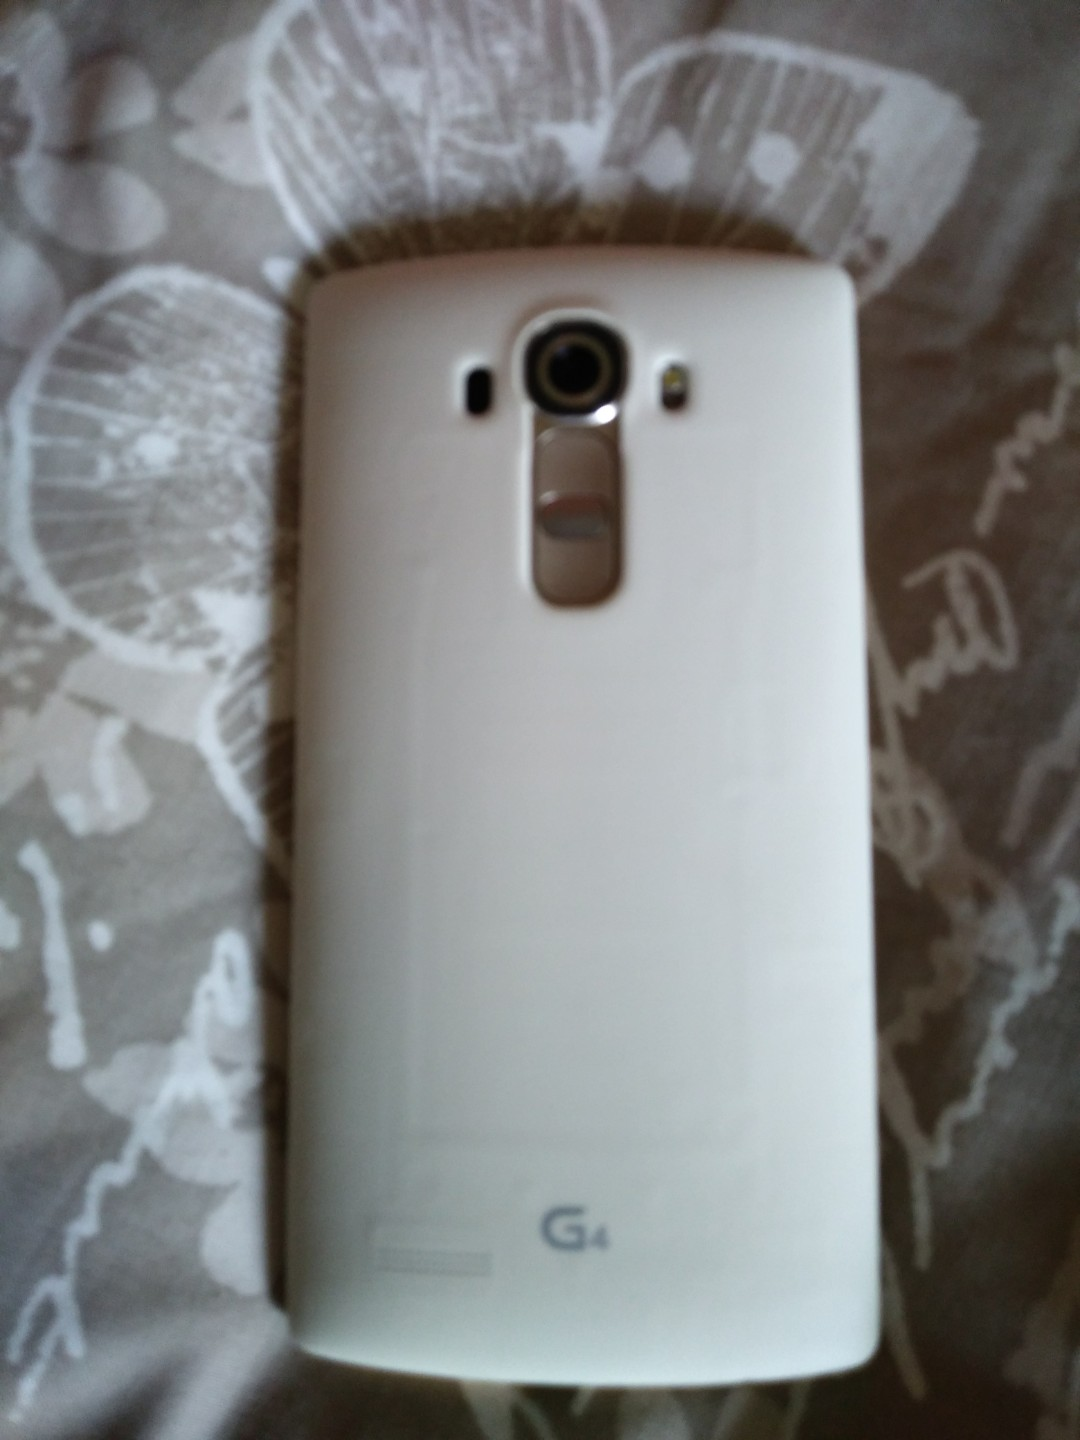 LG G4 Dual-Lite, Mobile Phones & Tablets, Android Phones, LG